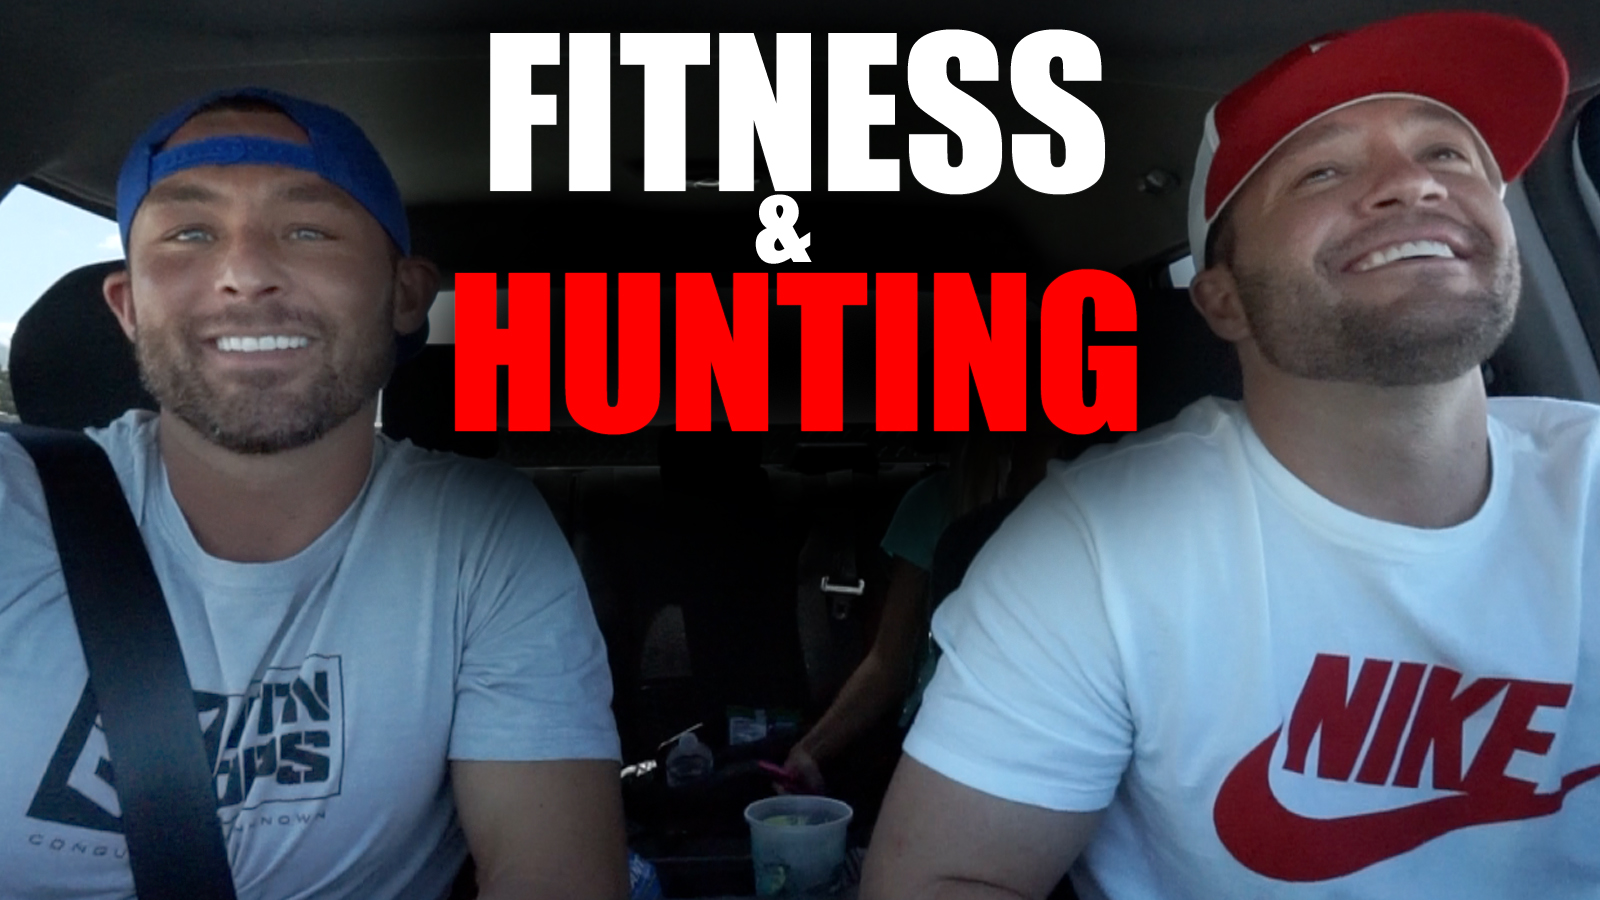 HUNTING AND FITNESS